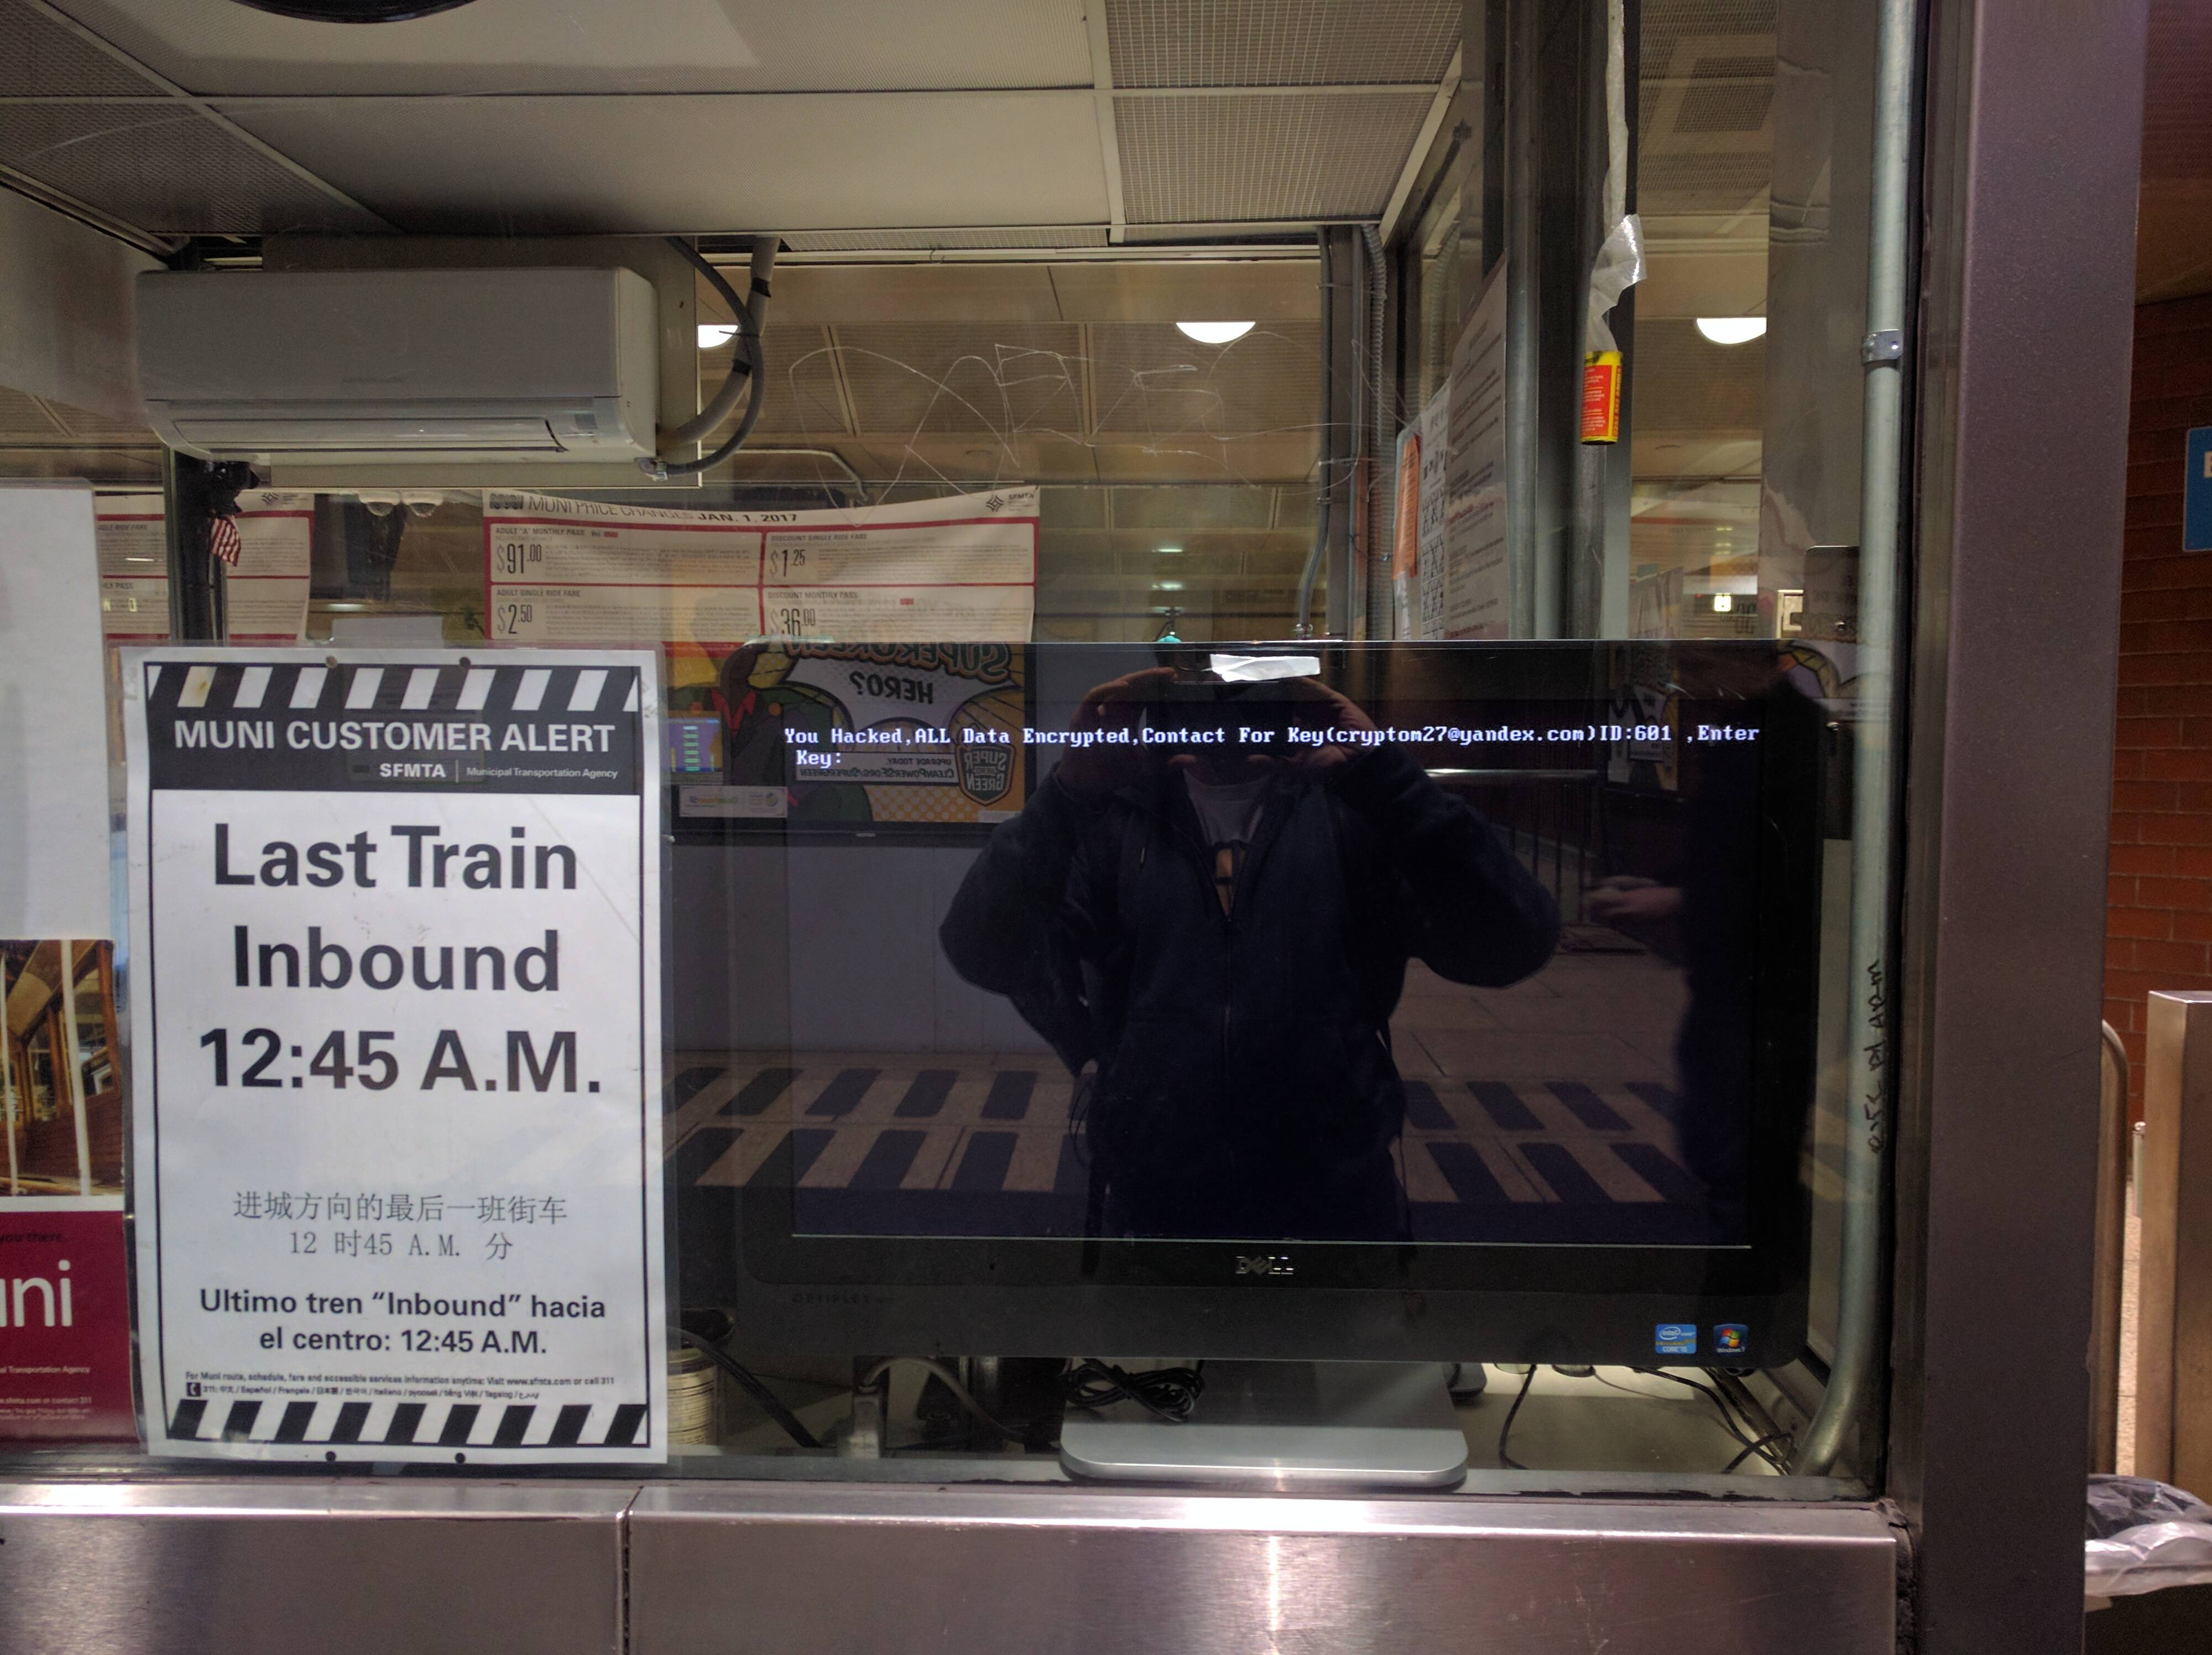 A screen at a Muni train station shows the malware message from HDDCryptor.